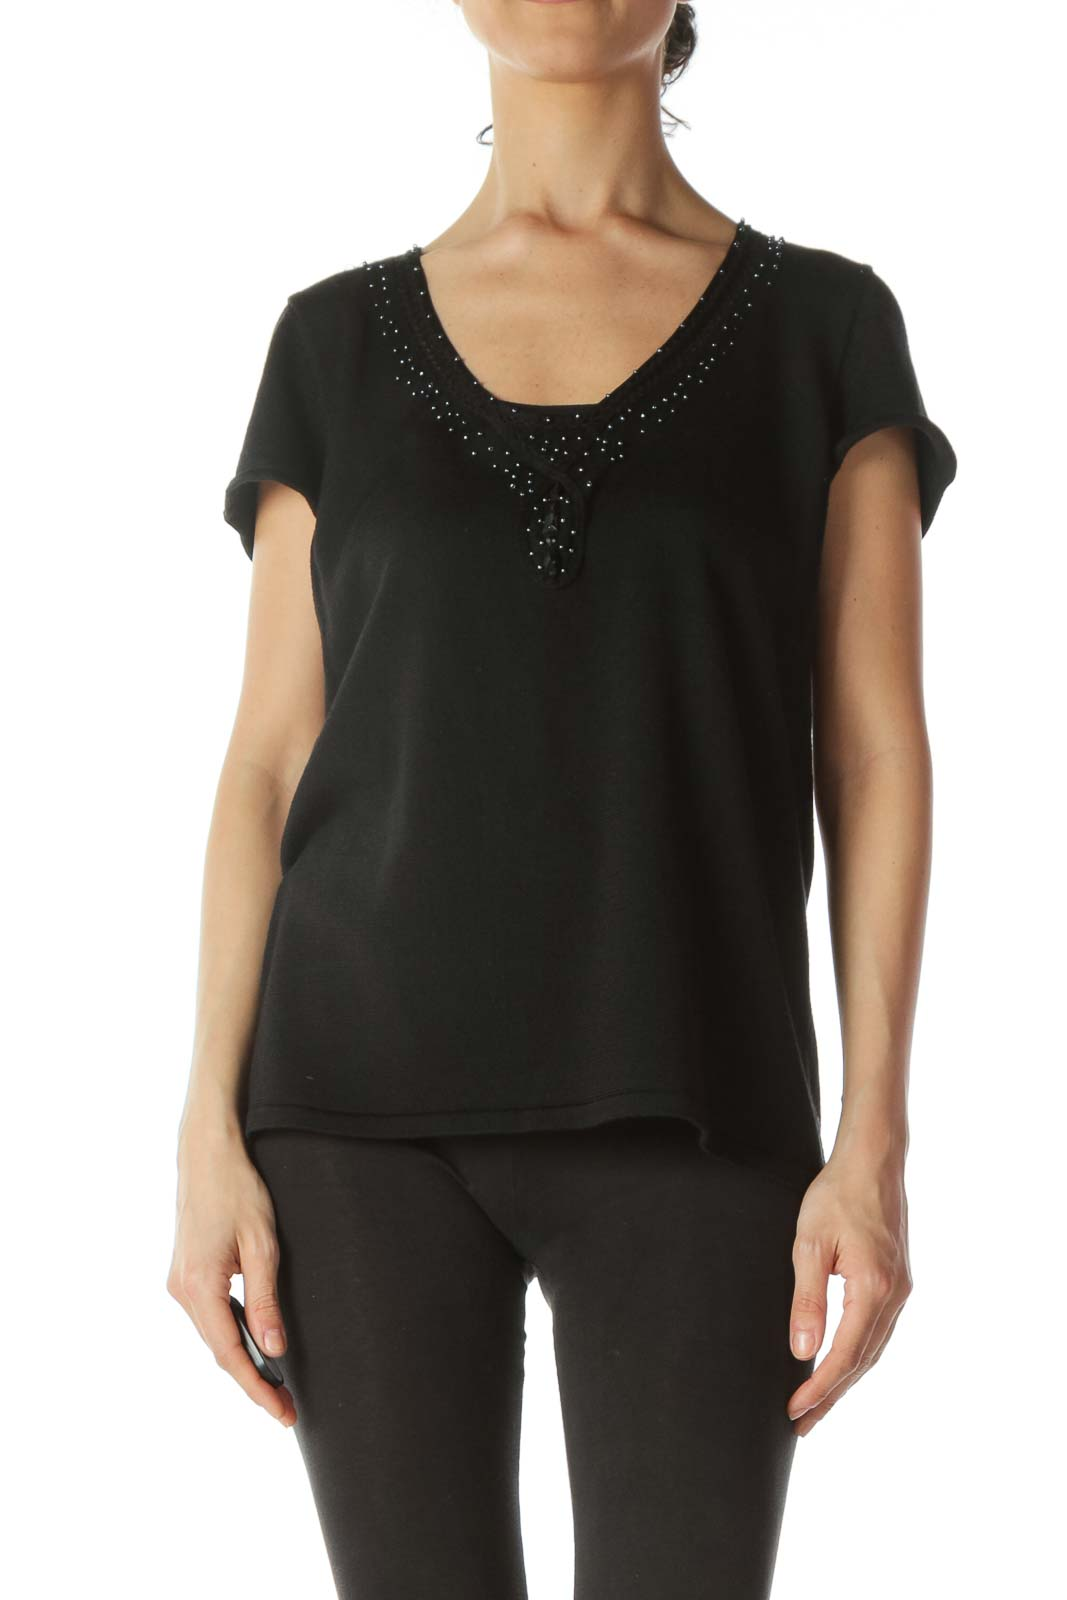 Black Neckline-Embellishment Stretch Textured Top